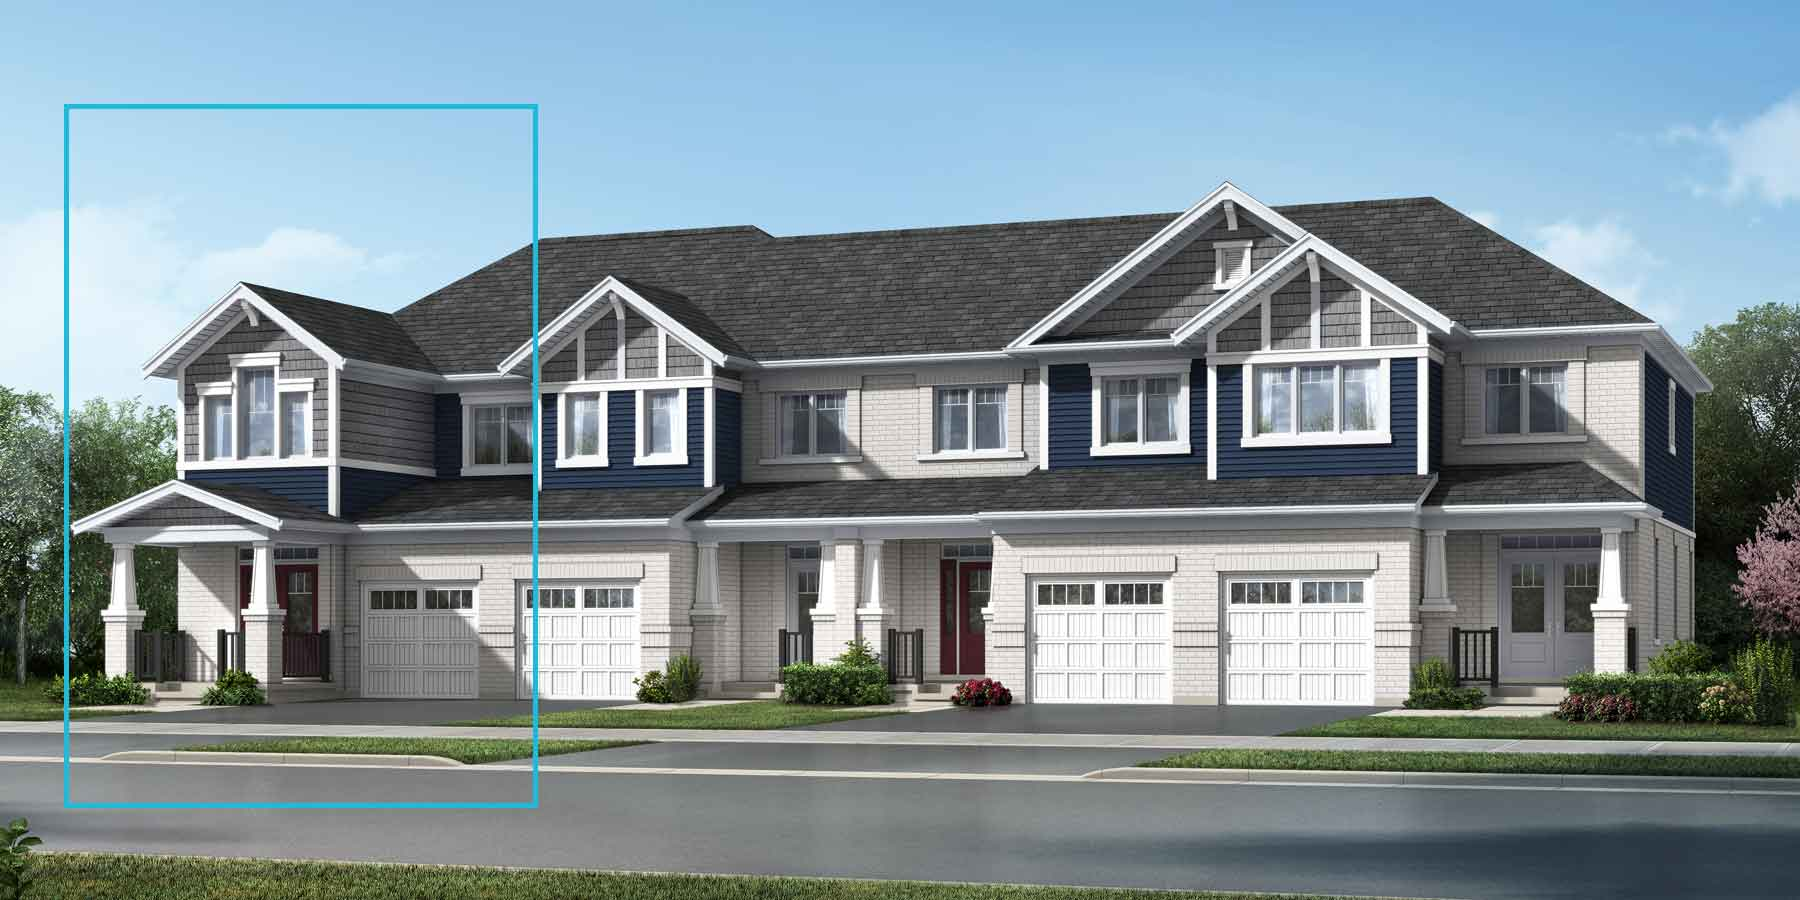 The Trussler End Plan elevationcraftsman_southestates_trusslerend at Wildflower Crossing in Kitchener Ontario by Mattamy Homes